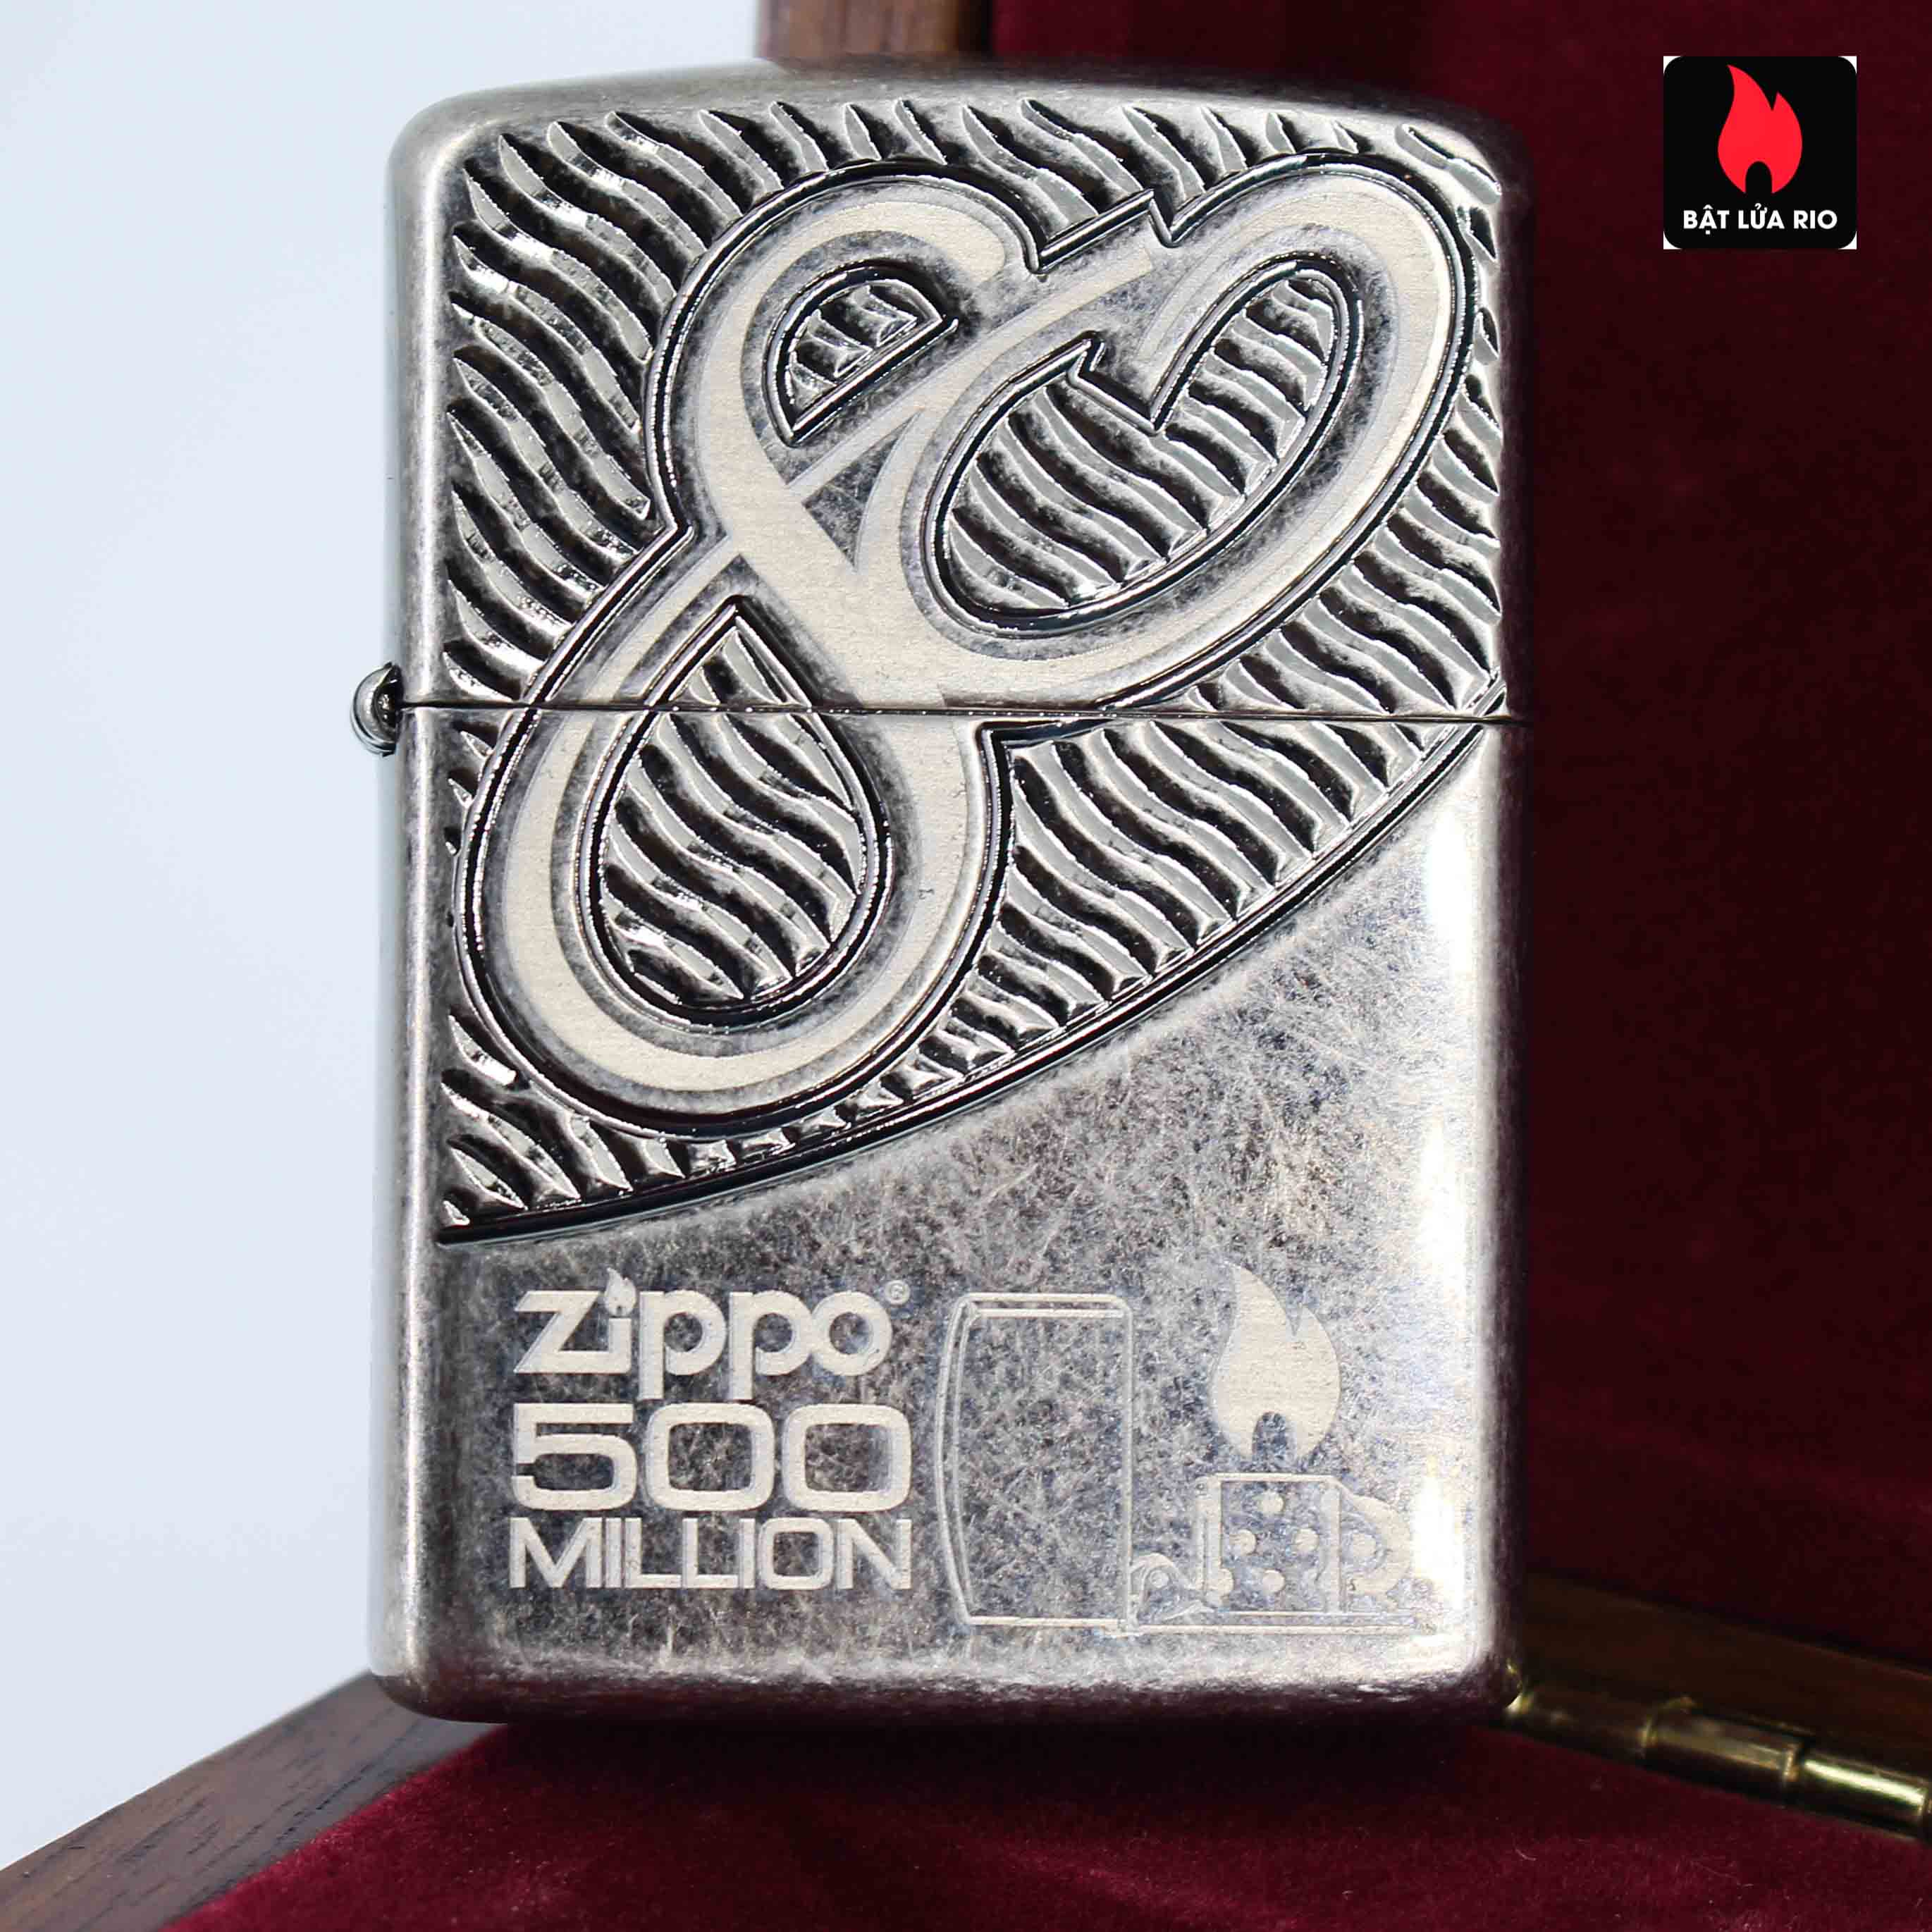 Zippo 2012 - 80th Anniversary and 500 Million - Limited 405/500